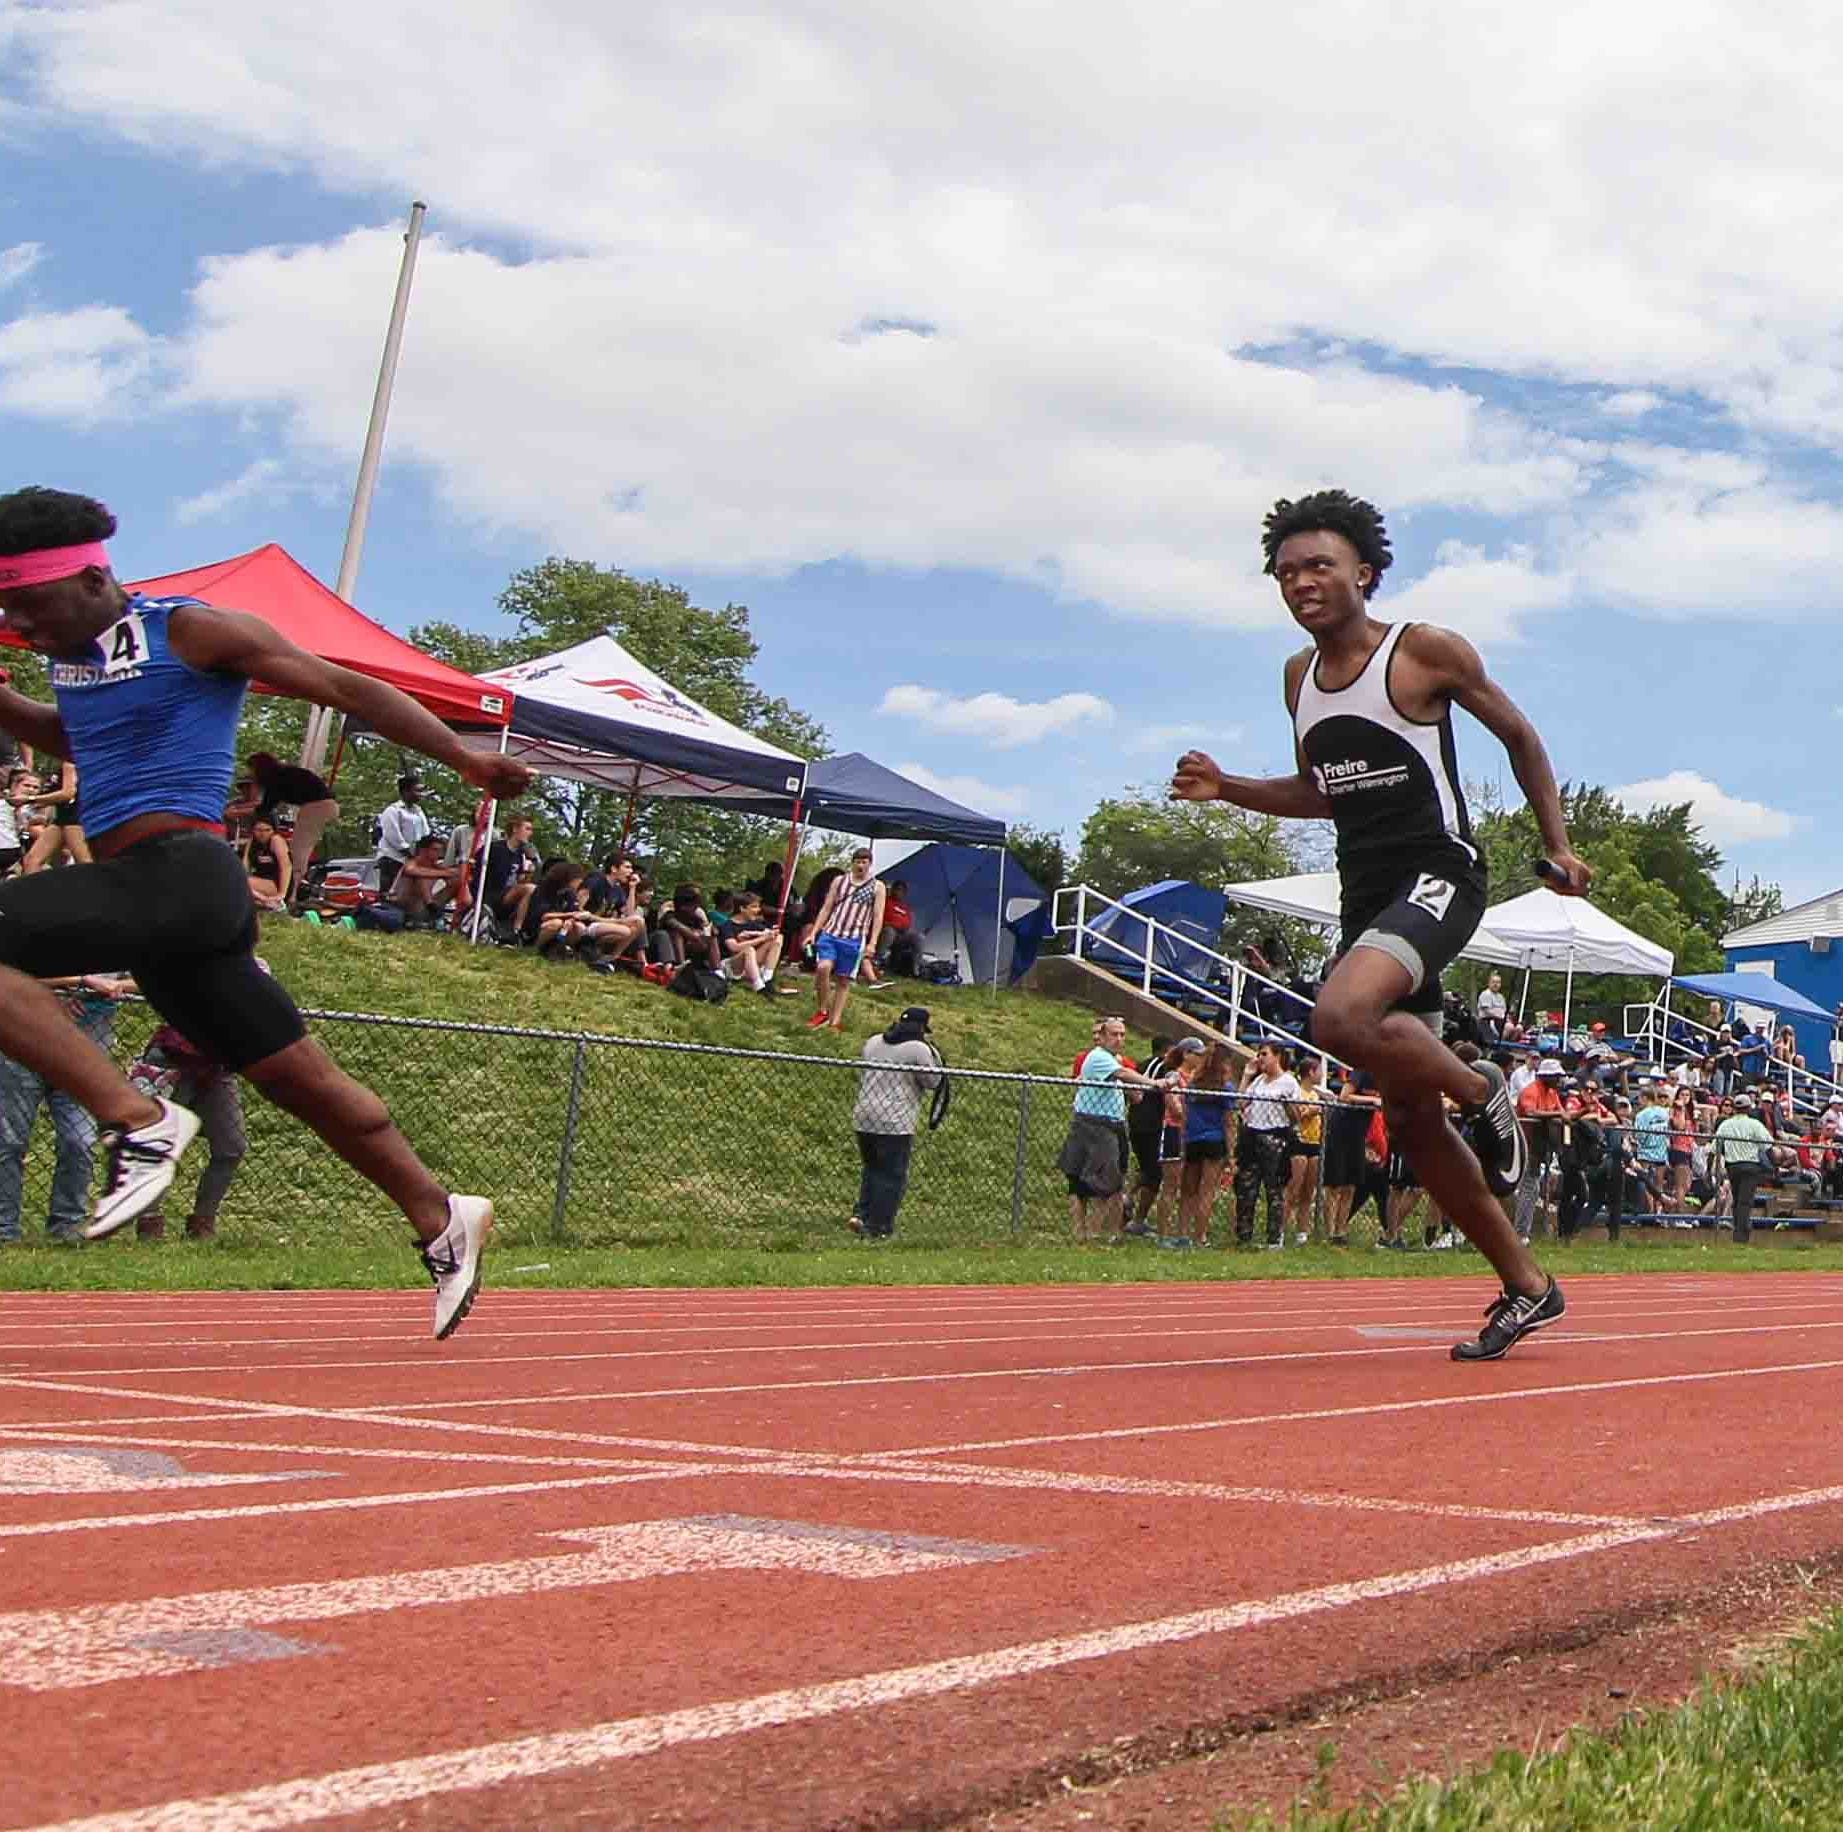 Padua sophomore soars to new height as state track meet starts